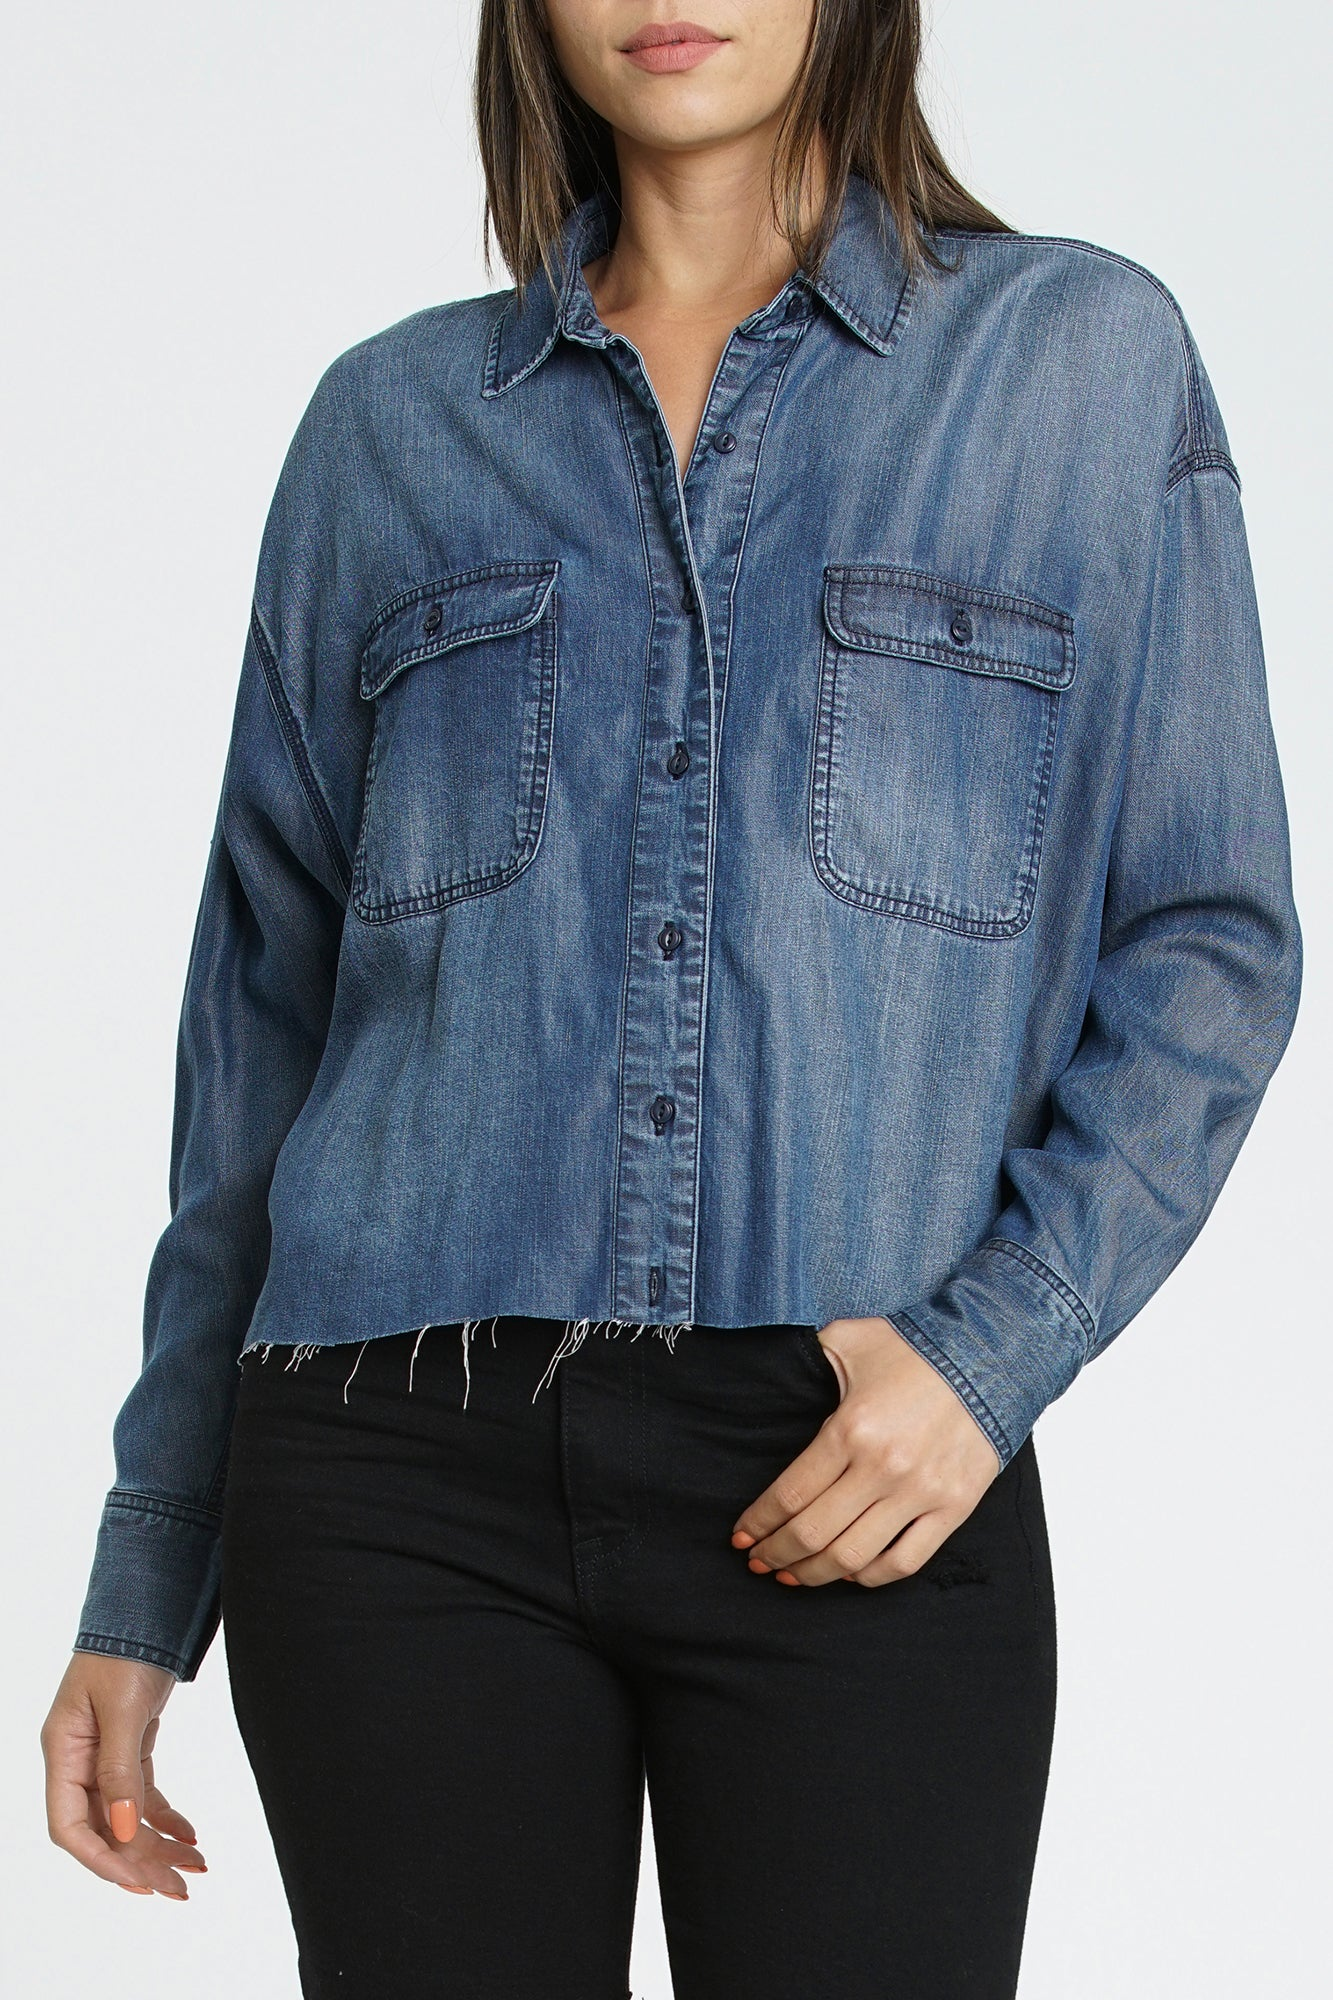 Logan Long Sleeve Indigo Top - Confession